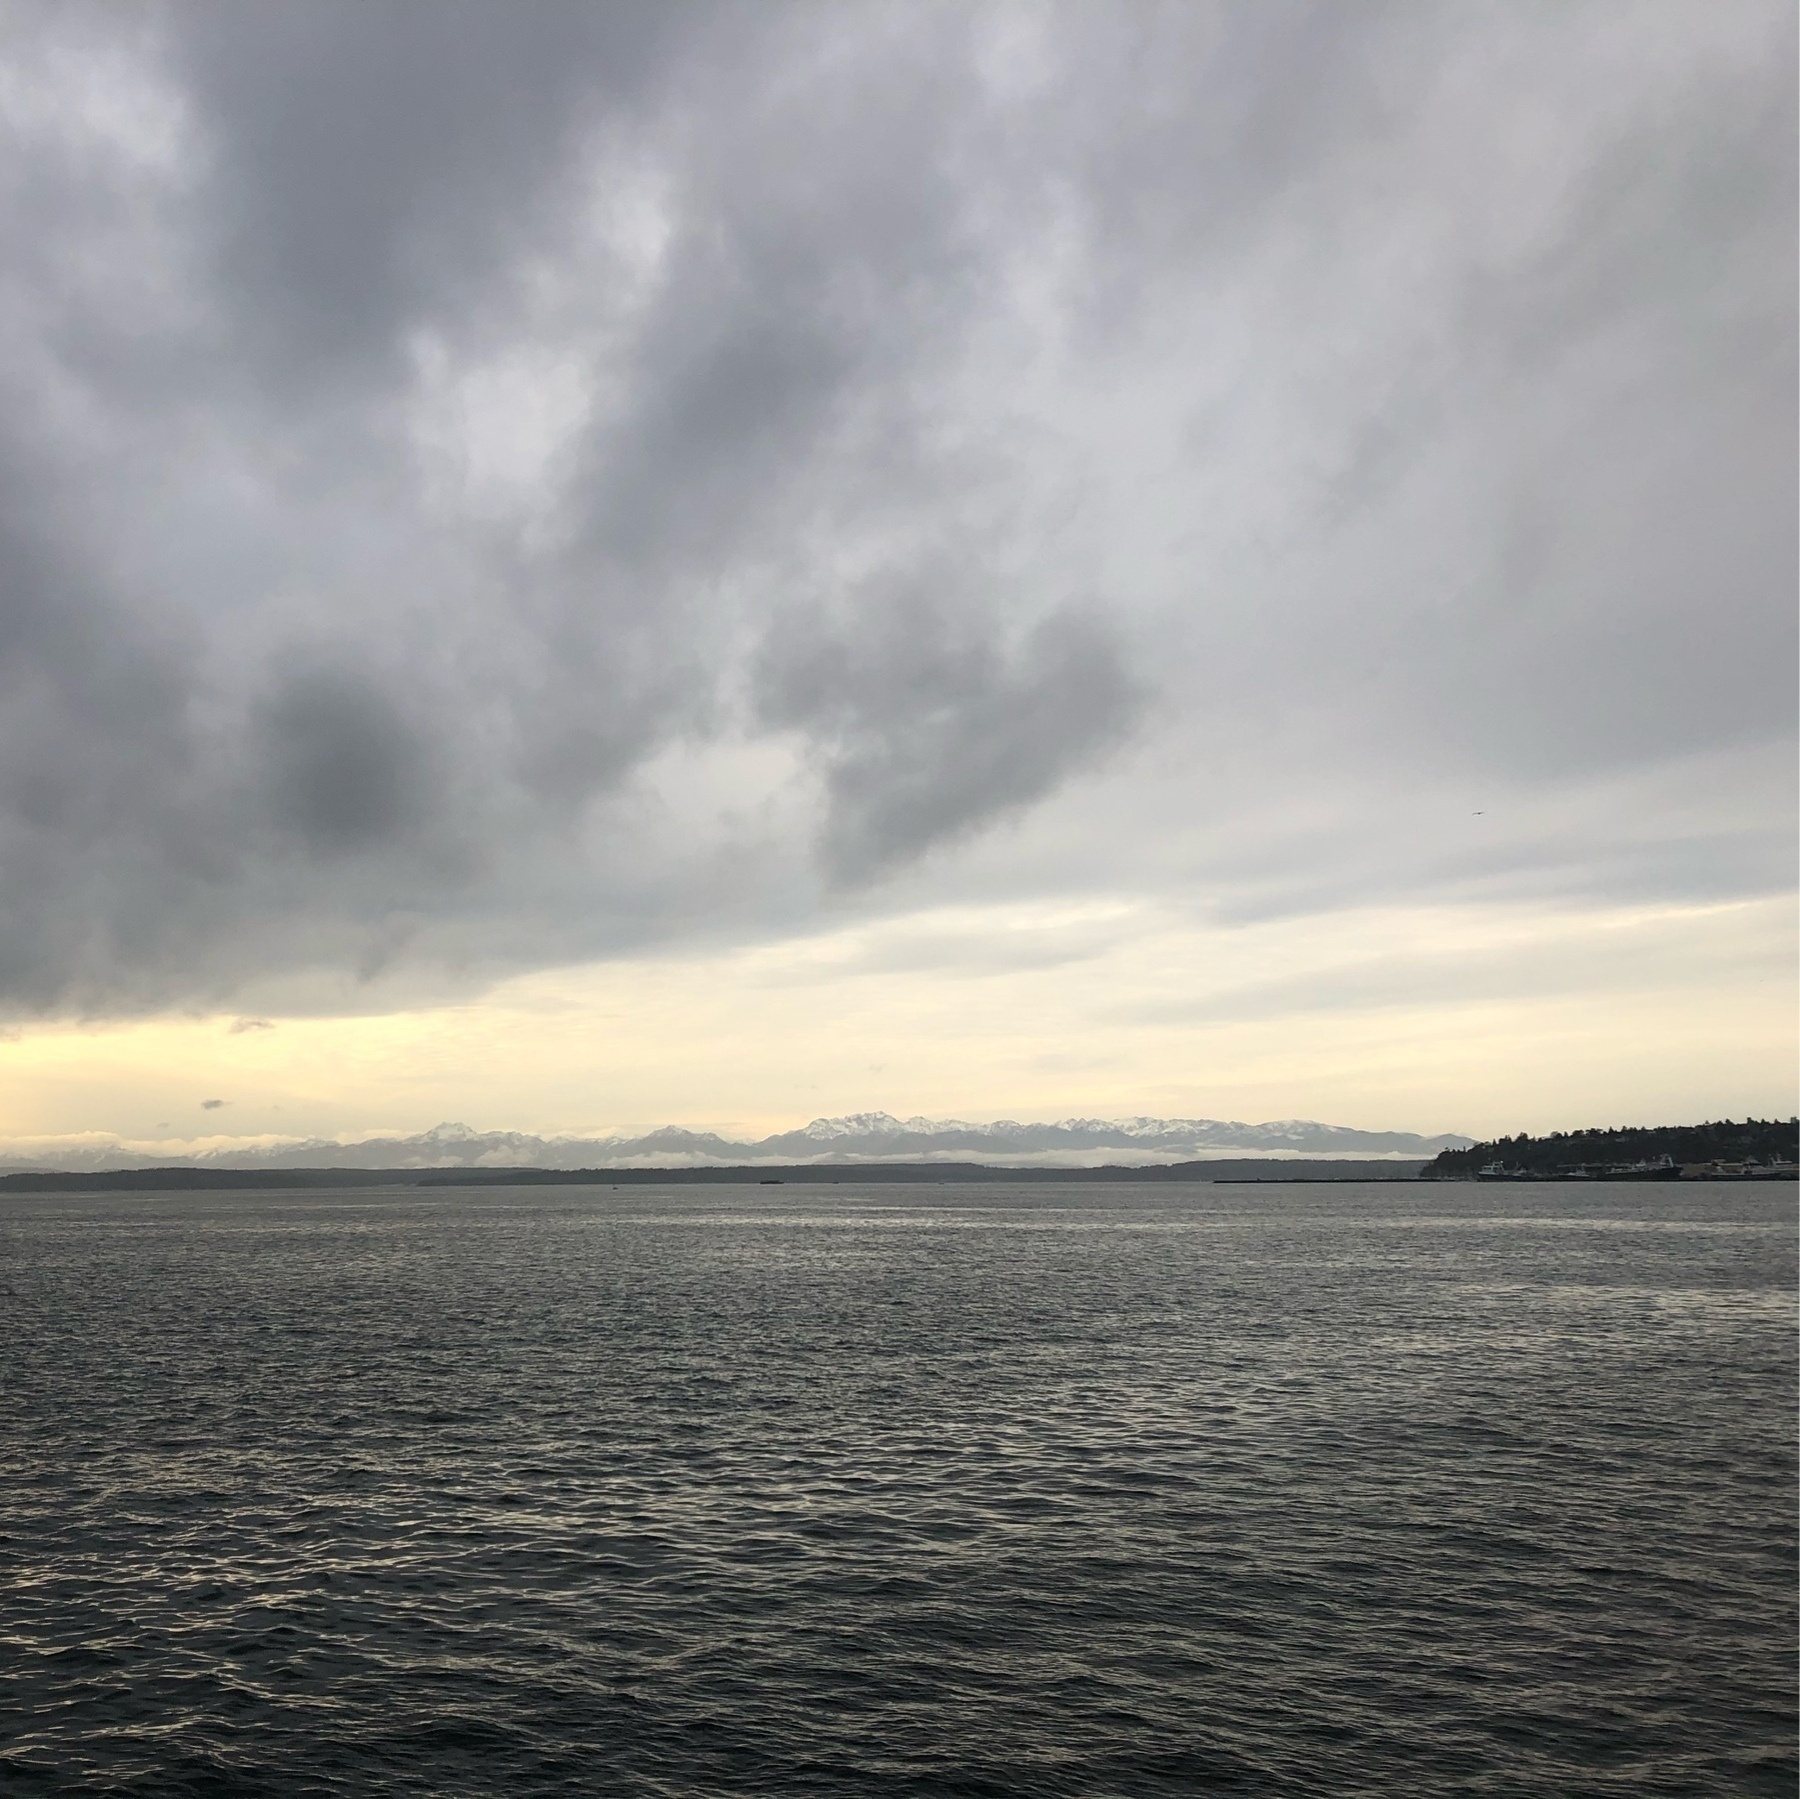 Dramatic white clouds hang low over the gray waters of Elliott Bay.